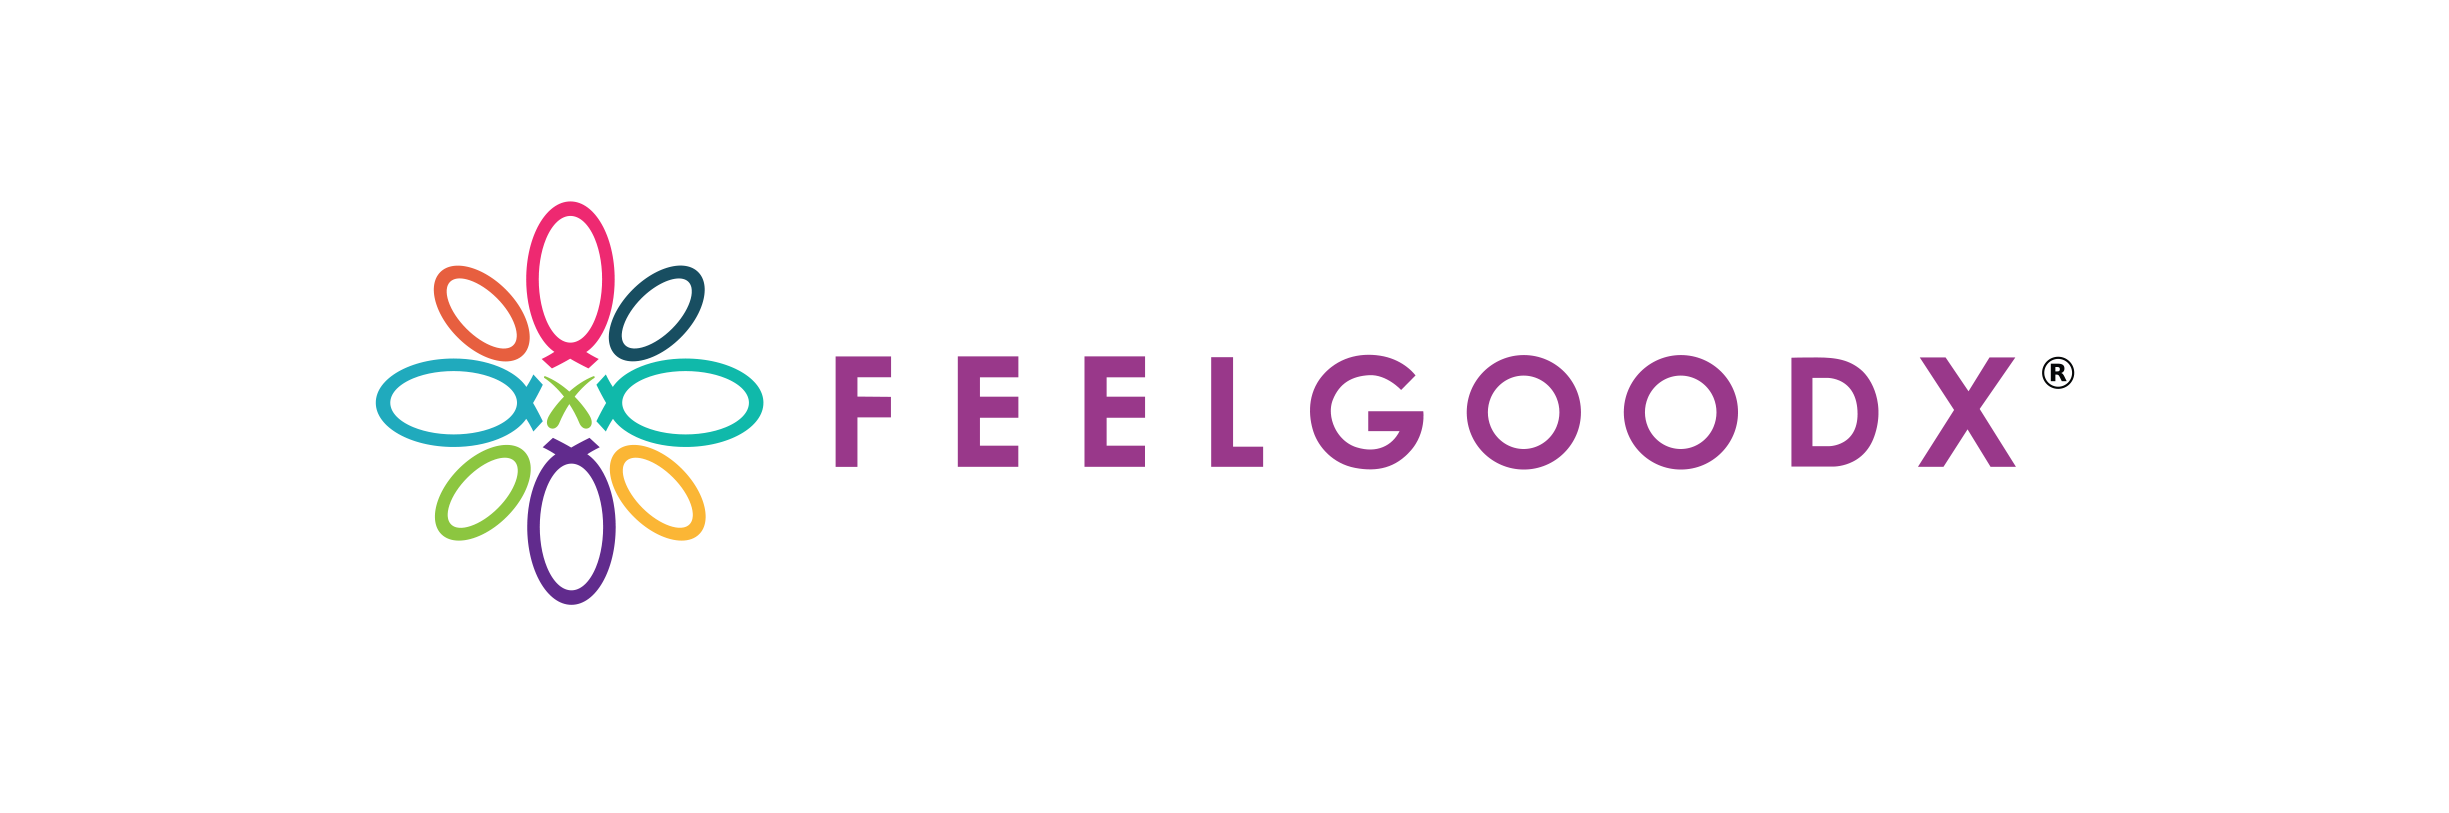 FEELGOODX helps businesses to focus more on humanity amidst the COVID-19 pandemic